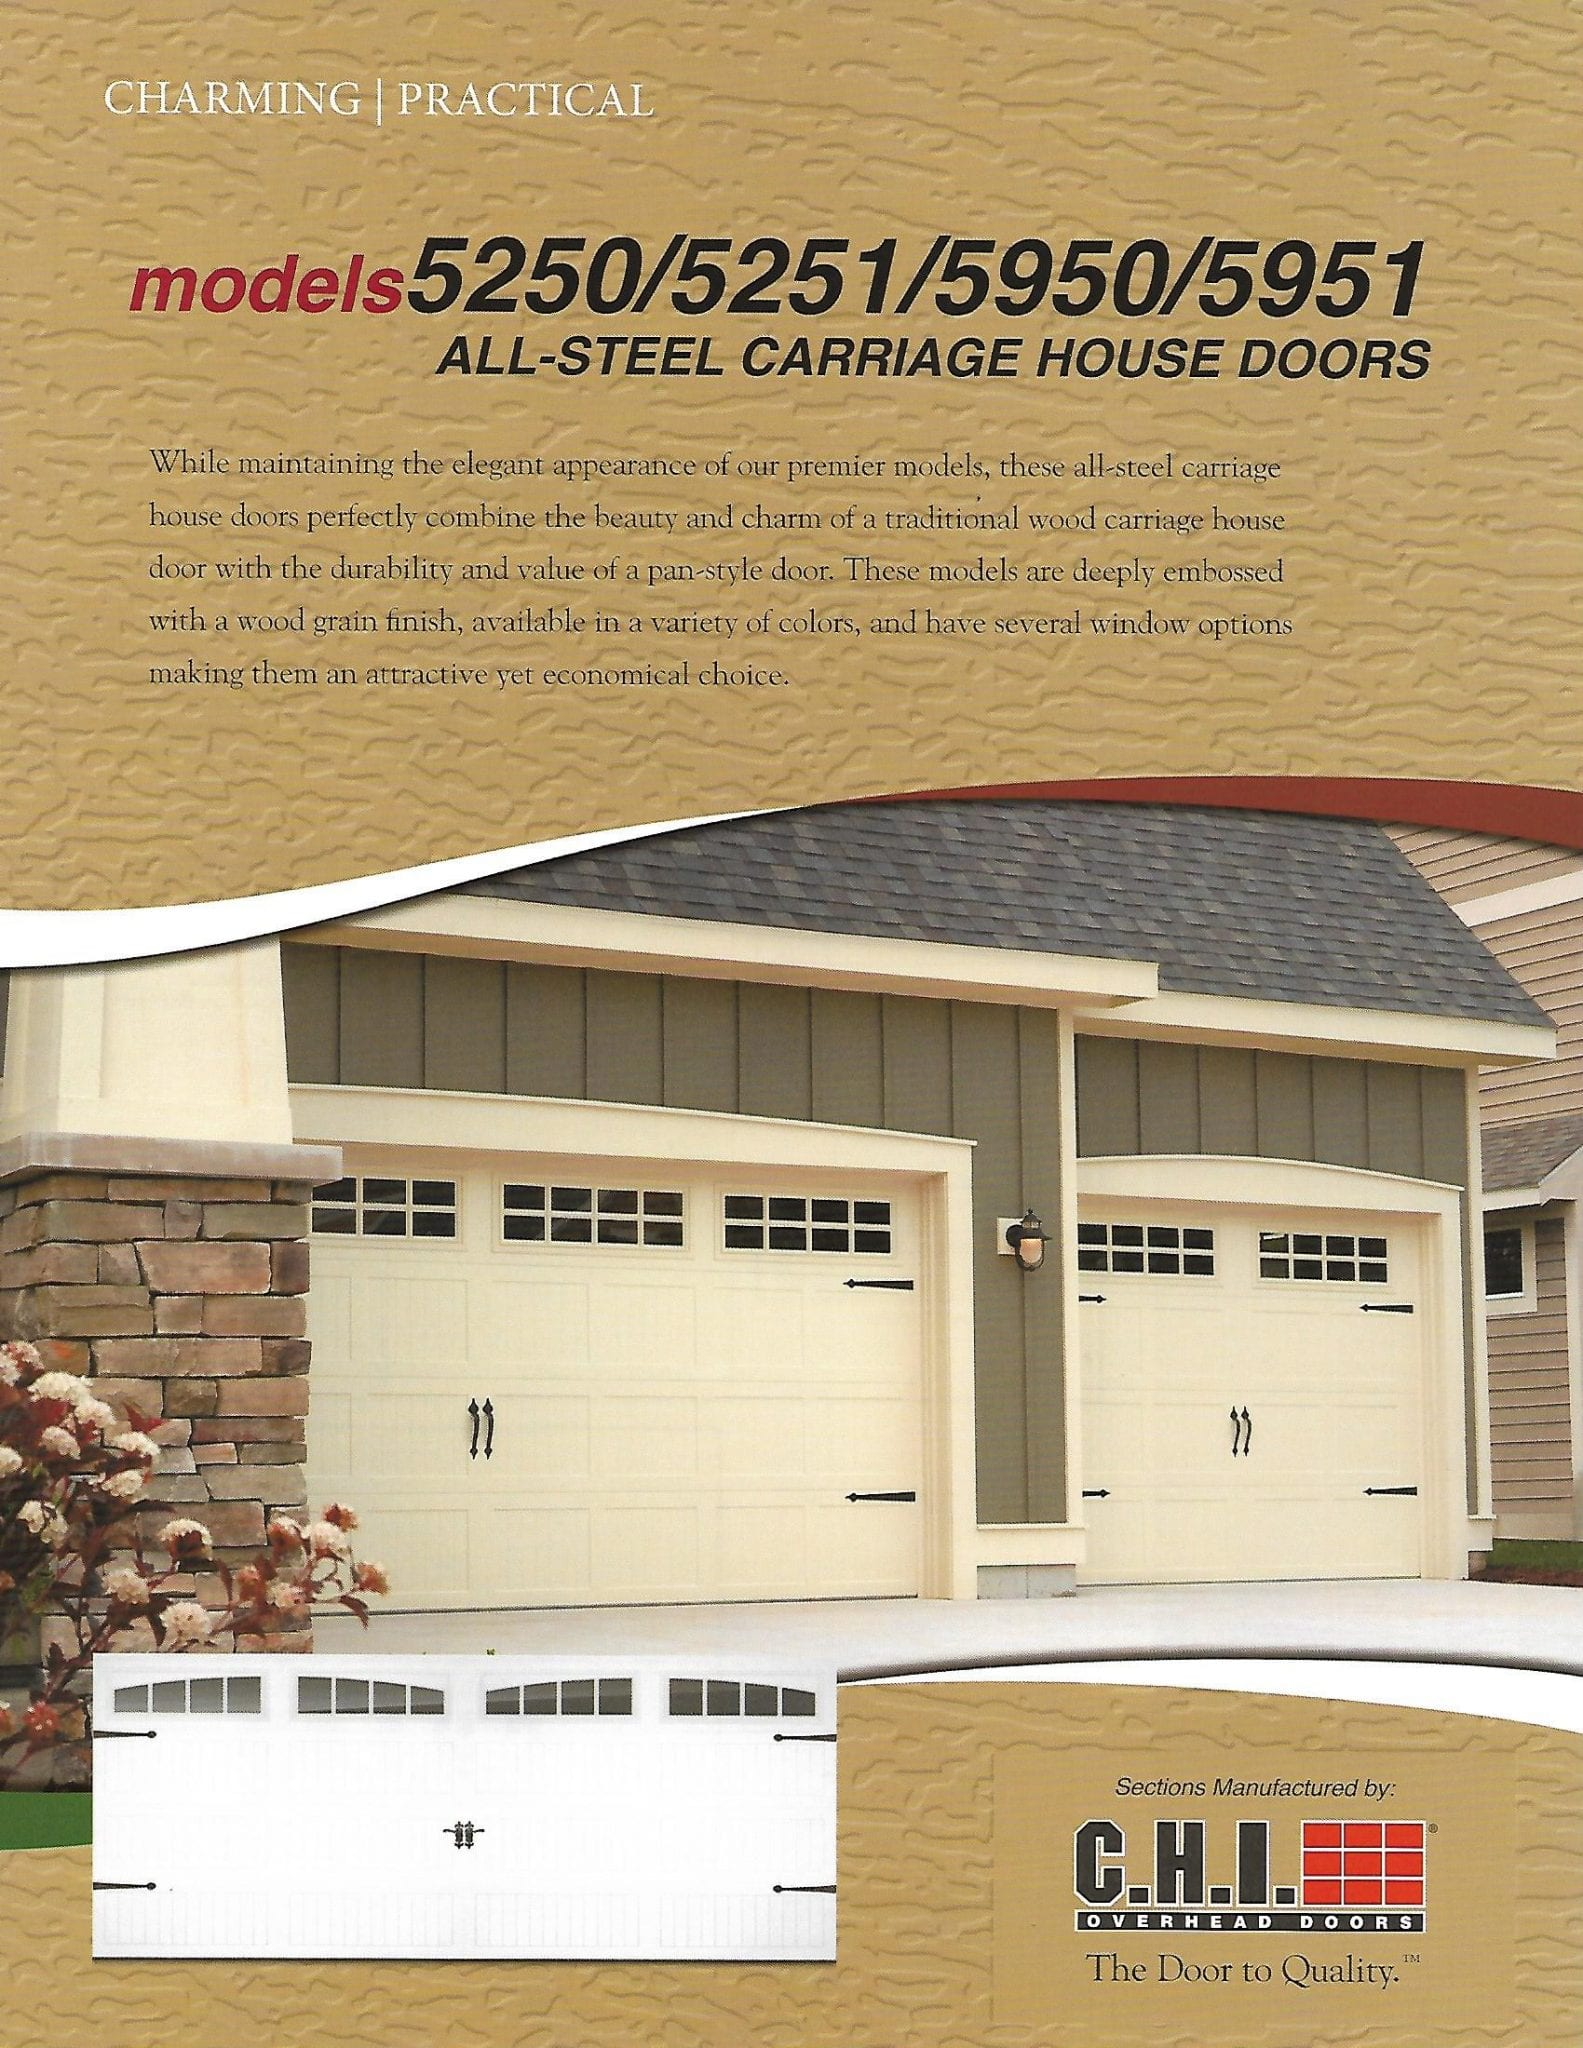 Carriage House Garage Door Service in Katy